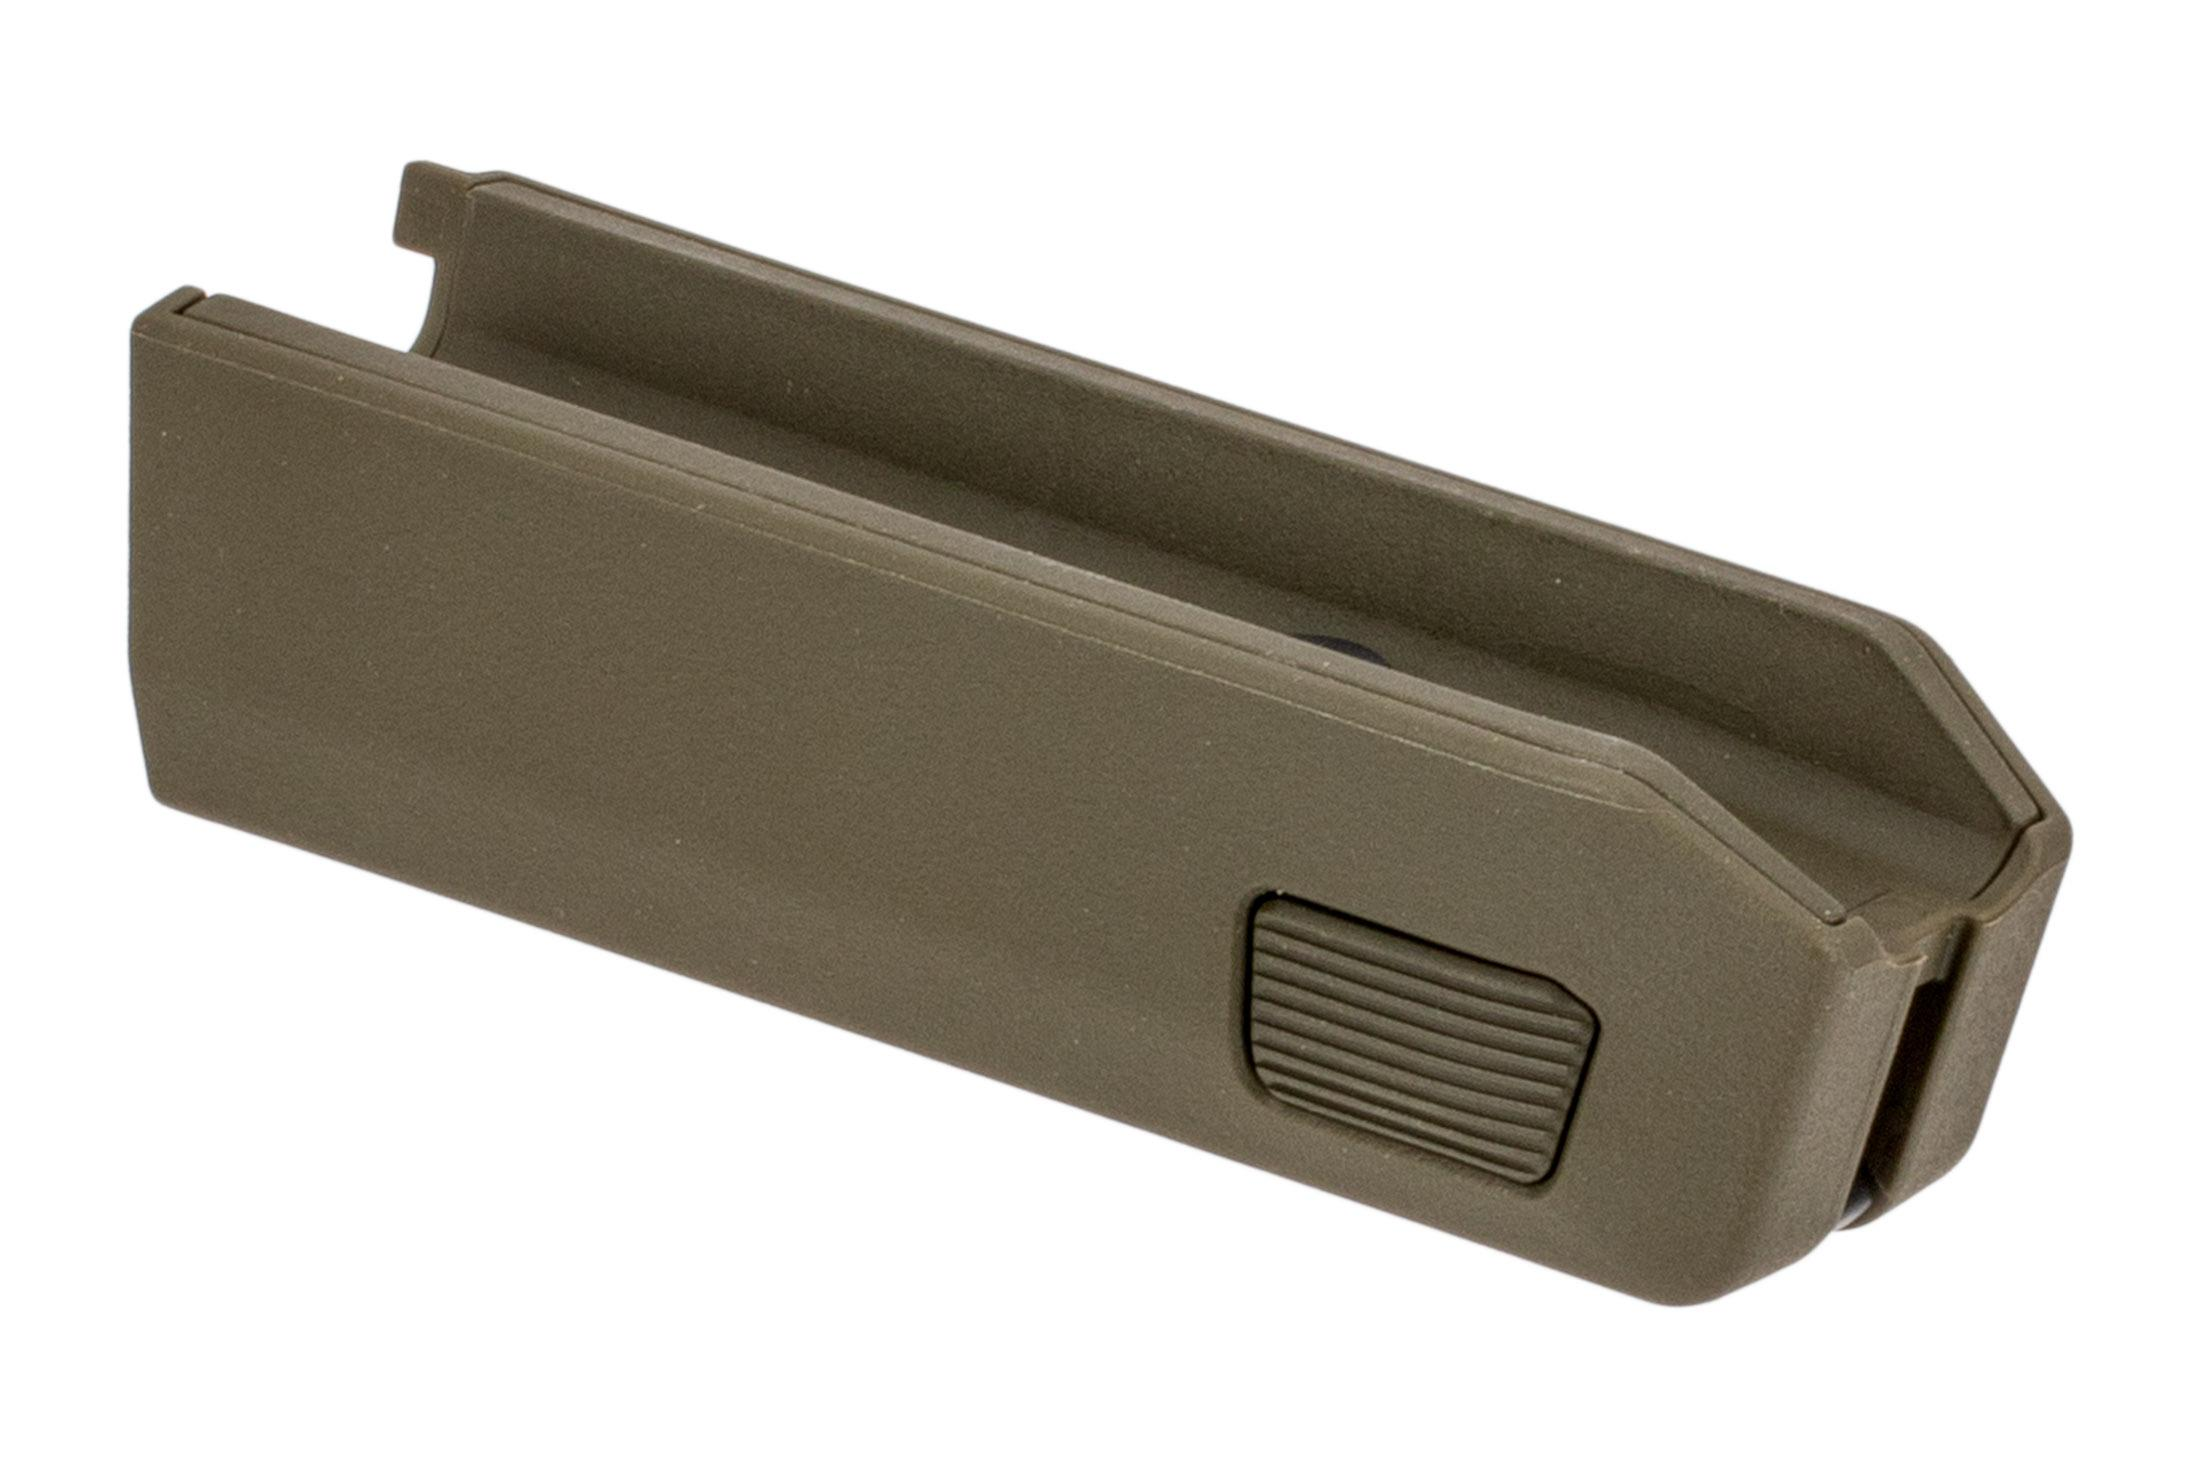 Magpul Backpacker X22 Takedown forend is made from olive drab green polymer